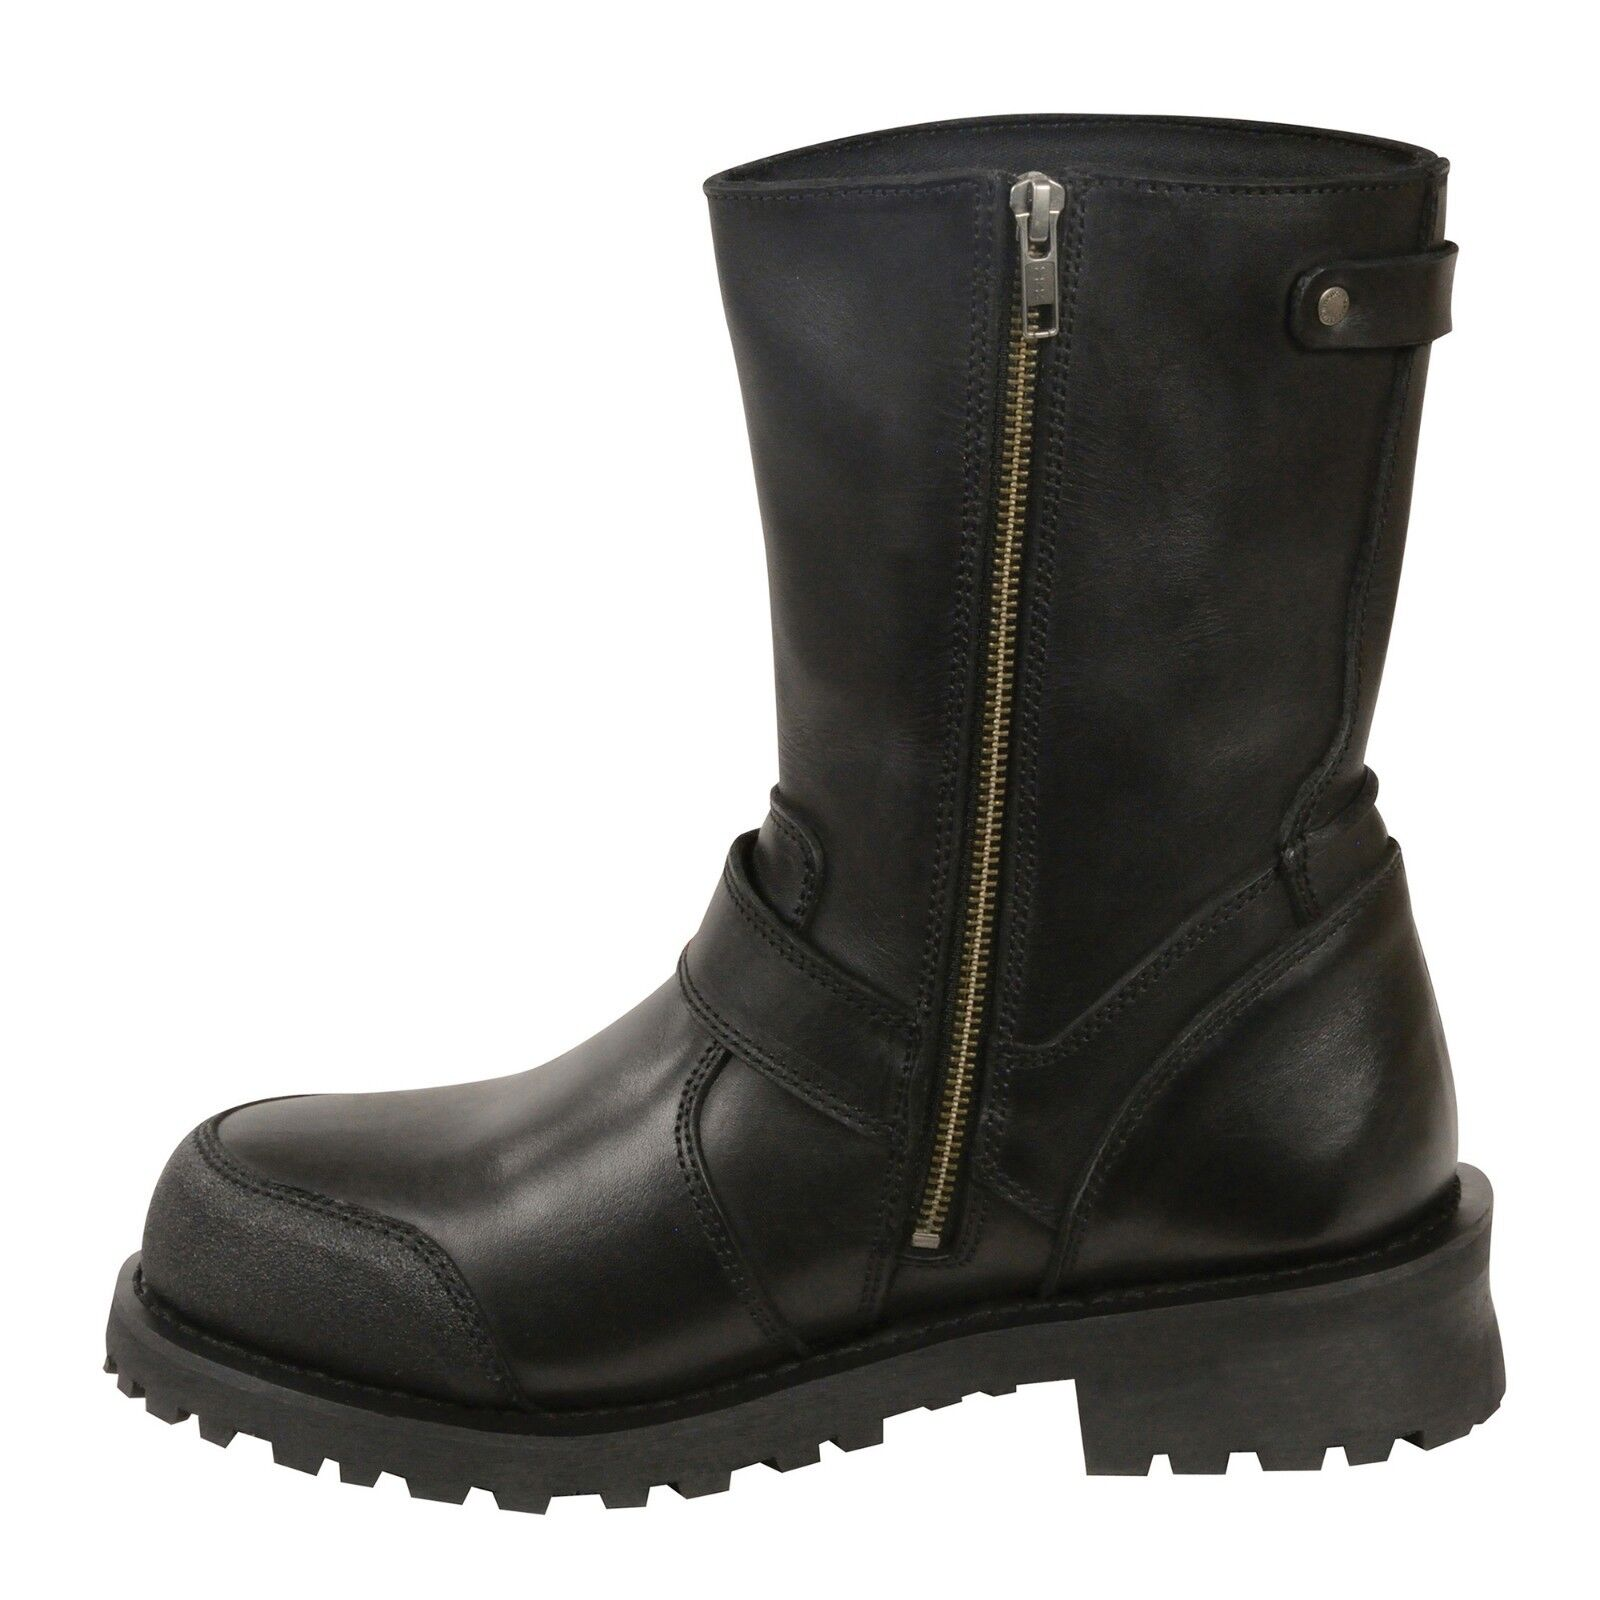 Milwaukee PelleUomo's Classic Engineer Boot w/ Abrasion MBM9090 Guard MBM9090 Abrasion dfc5eb